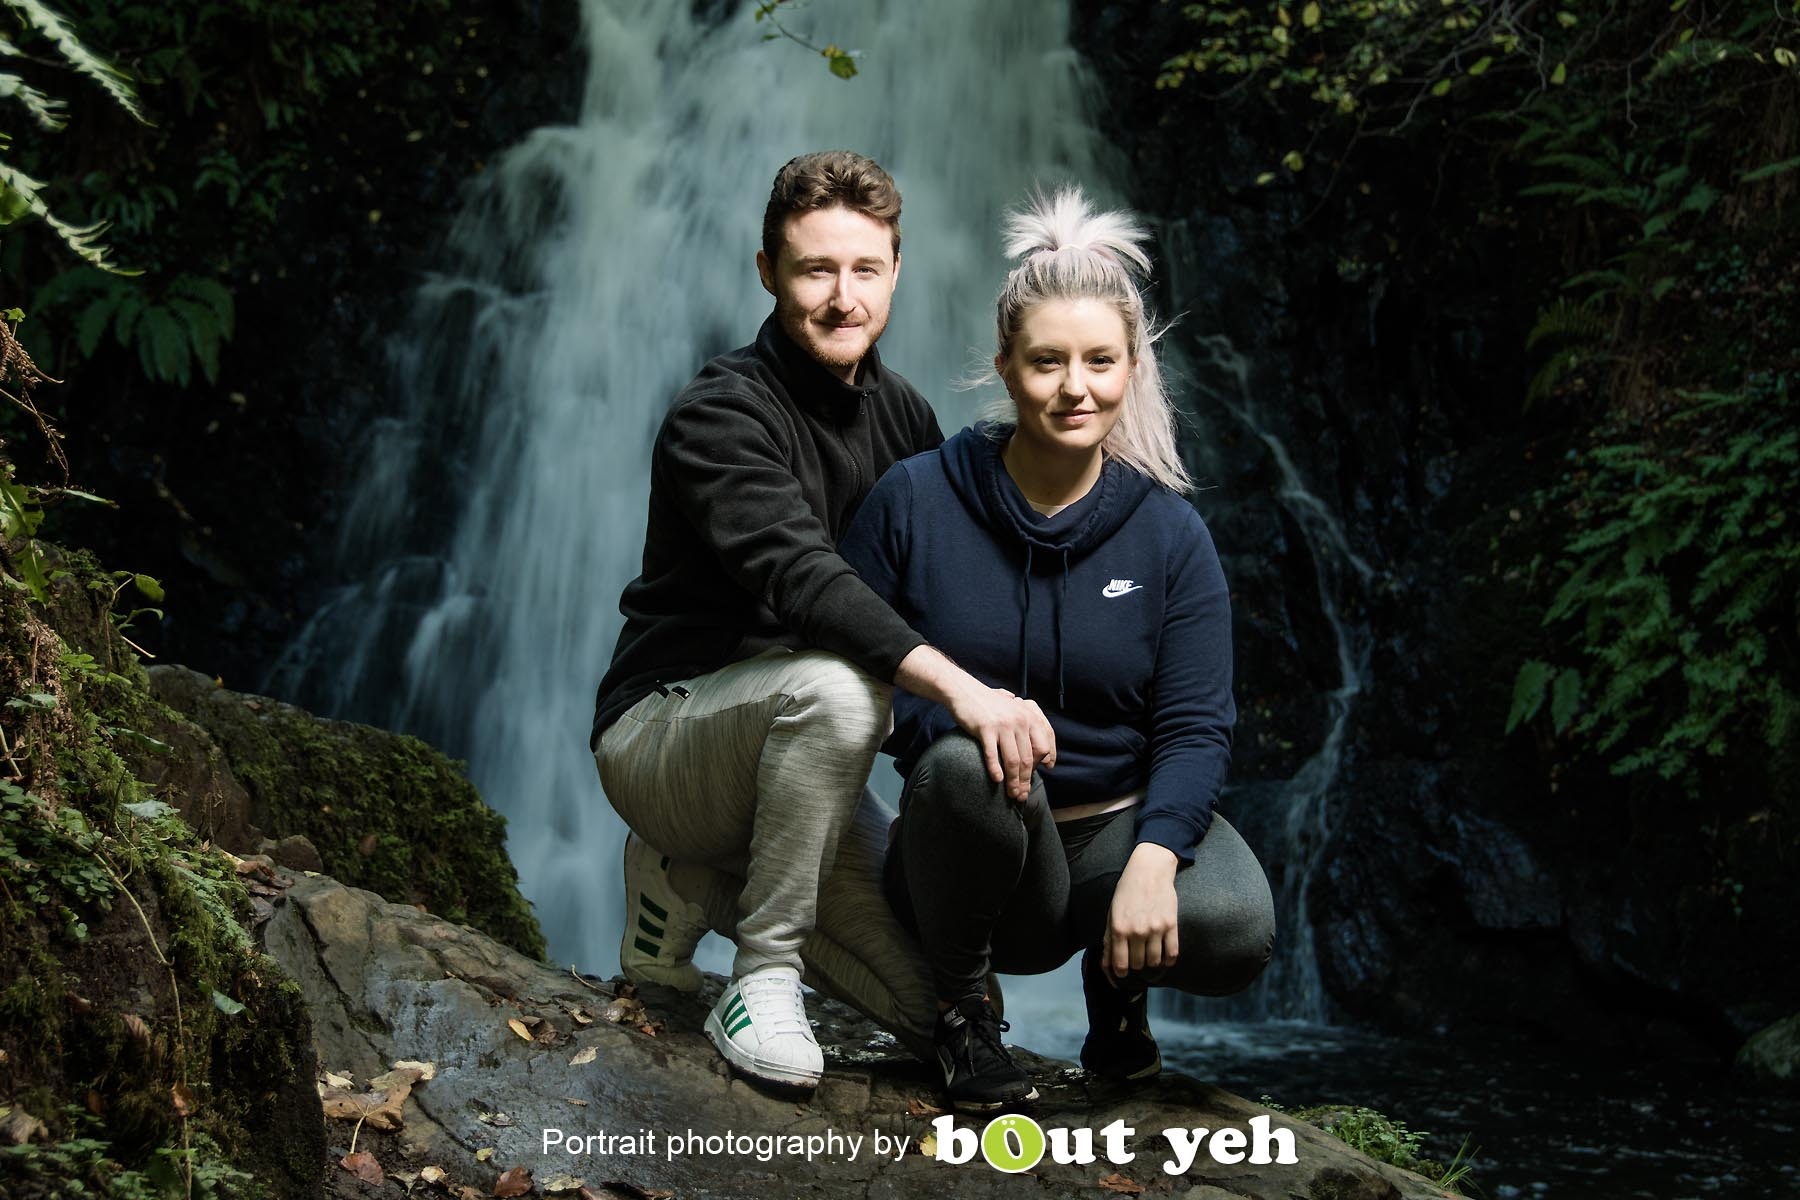 David and Joanna, at Gleno Waterfall, Northern Ireland - photo 9004.